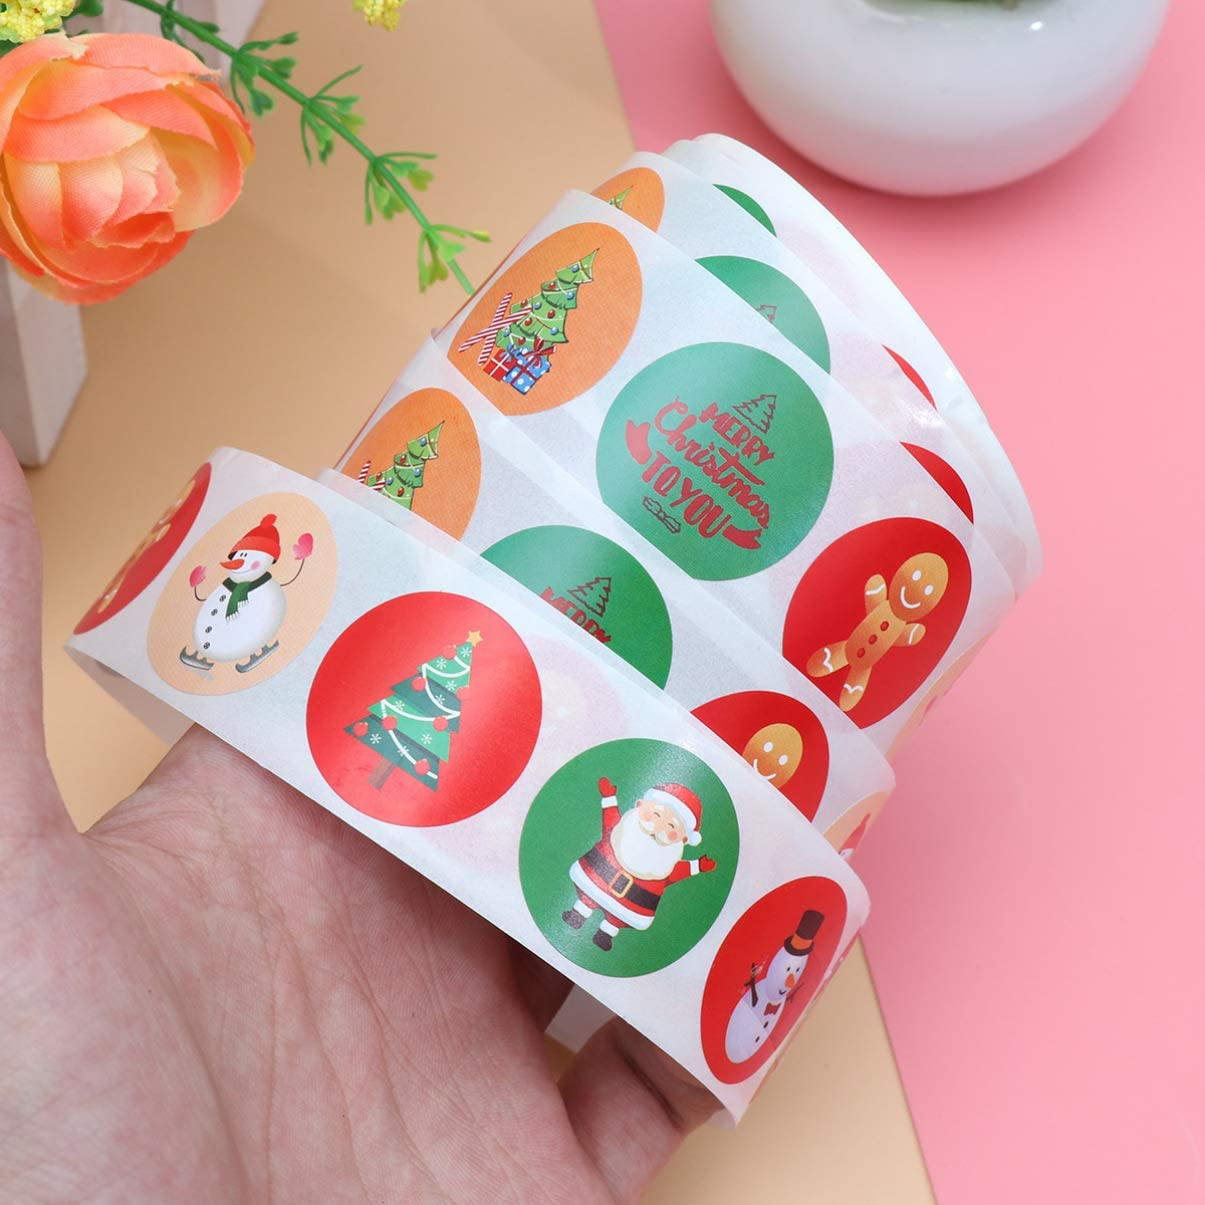 NUOBESTY Christmas Stickers Holiday Stickers Roll for Envelope Seals,Scrapbook,Winter Holiday Party Supplies,Goodie Bags,1 Inch